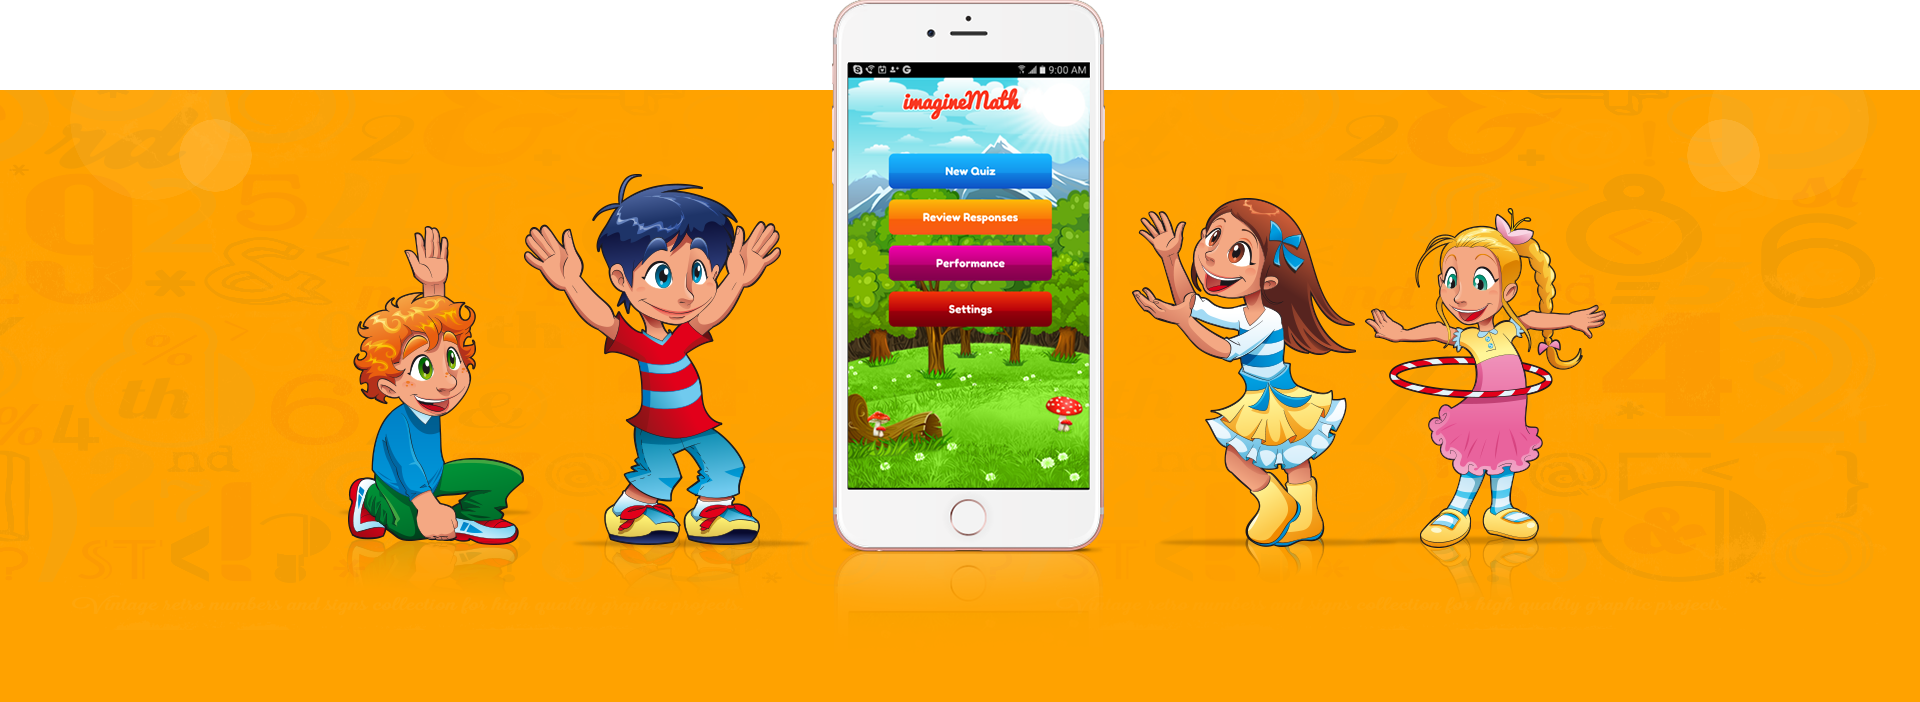 About Us - Imagine Math I Best Math Learning Application.